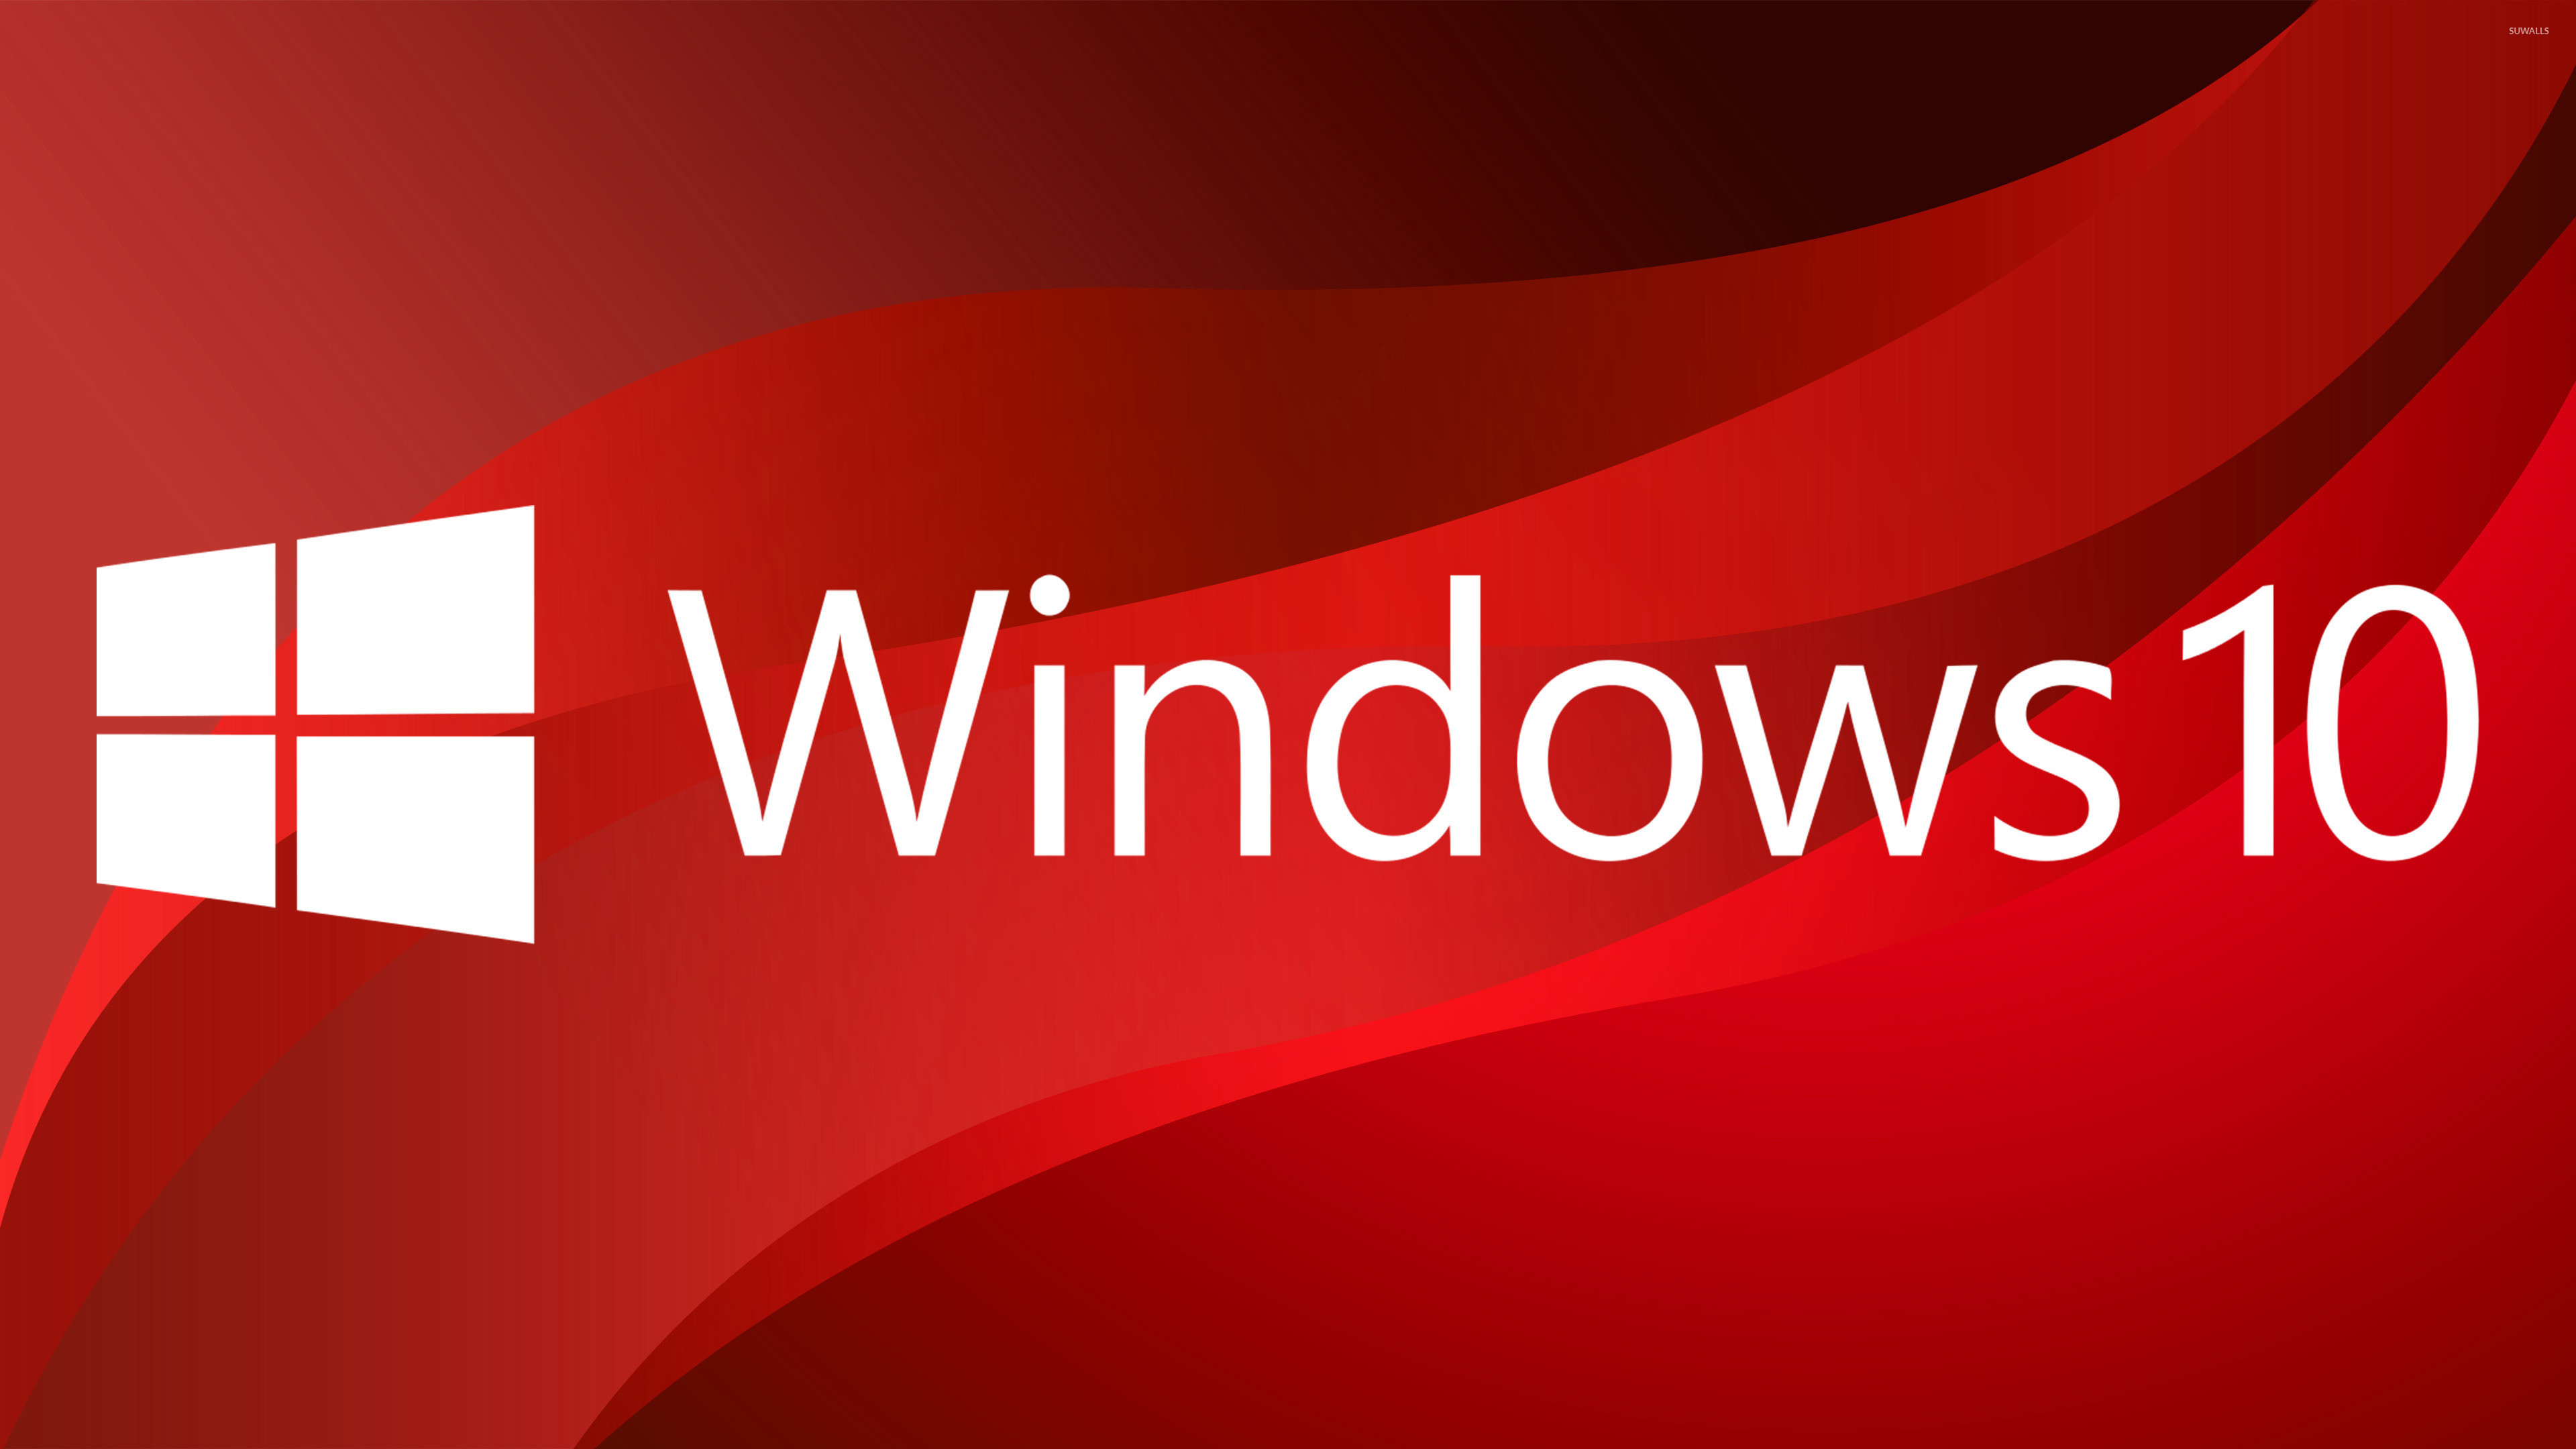 Windows 10 big white logo on red curves wallpaper